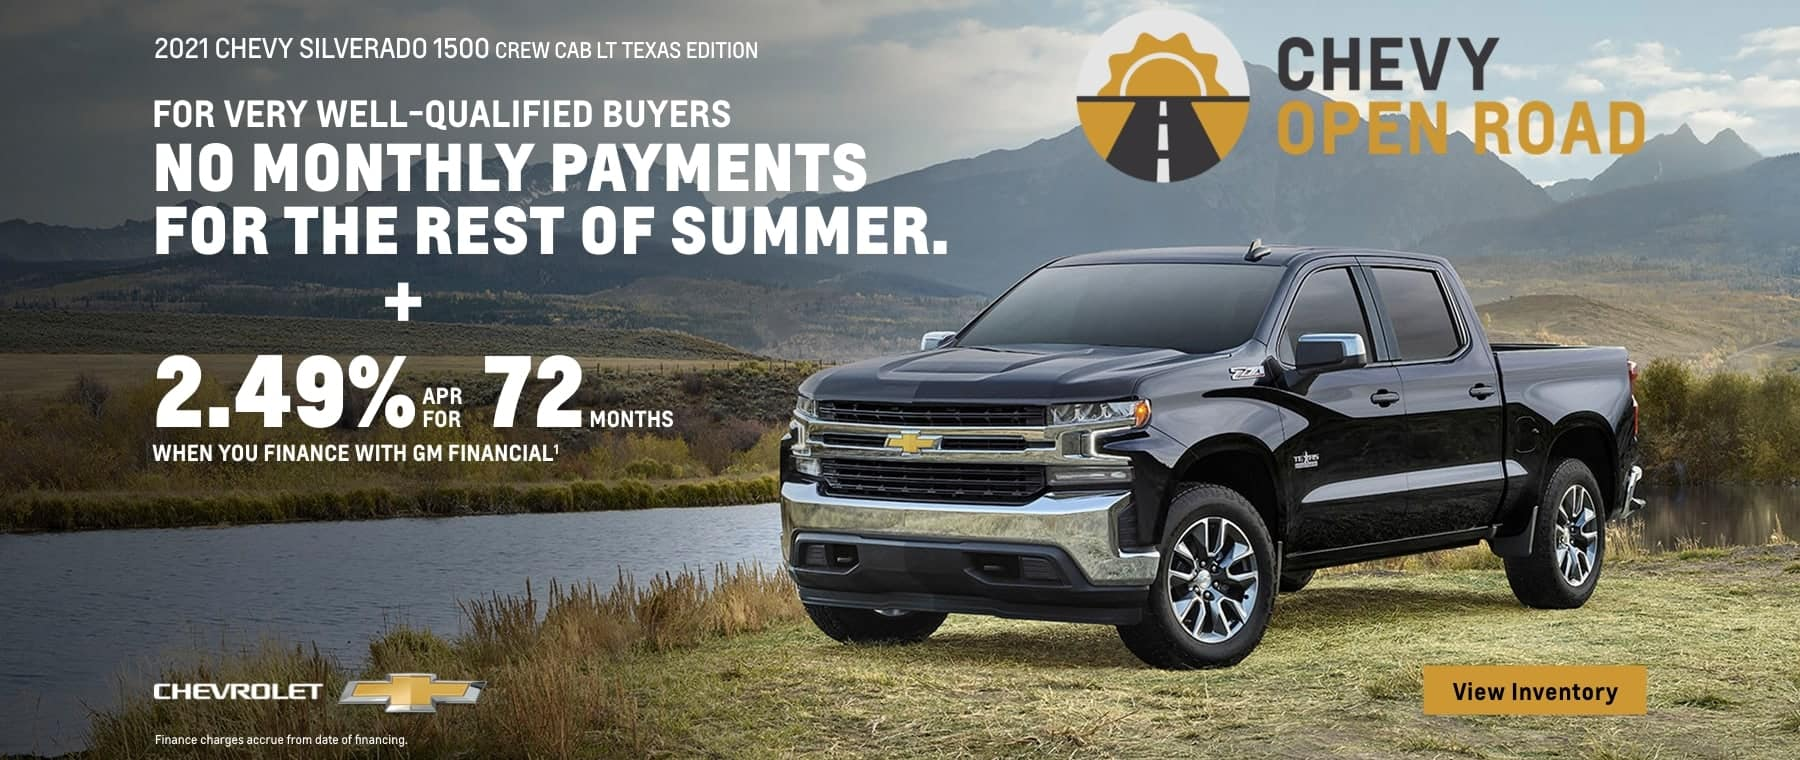 2021 Chevy Silverado 1500 Crew Cab LT Texas Edition. No monthly payments for the rest of summer for vey well-qualified buyers. Plus, 2.49% APR for 72 months when you finance with GM Financial.